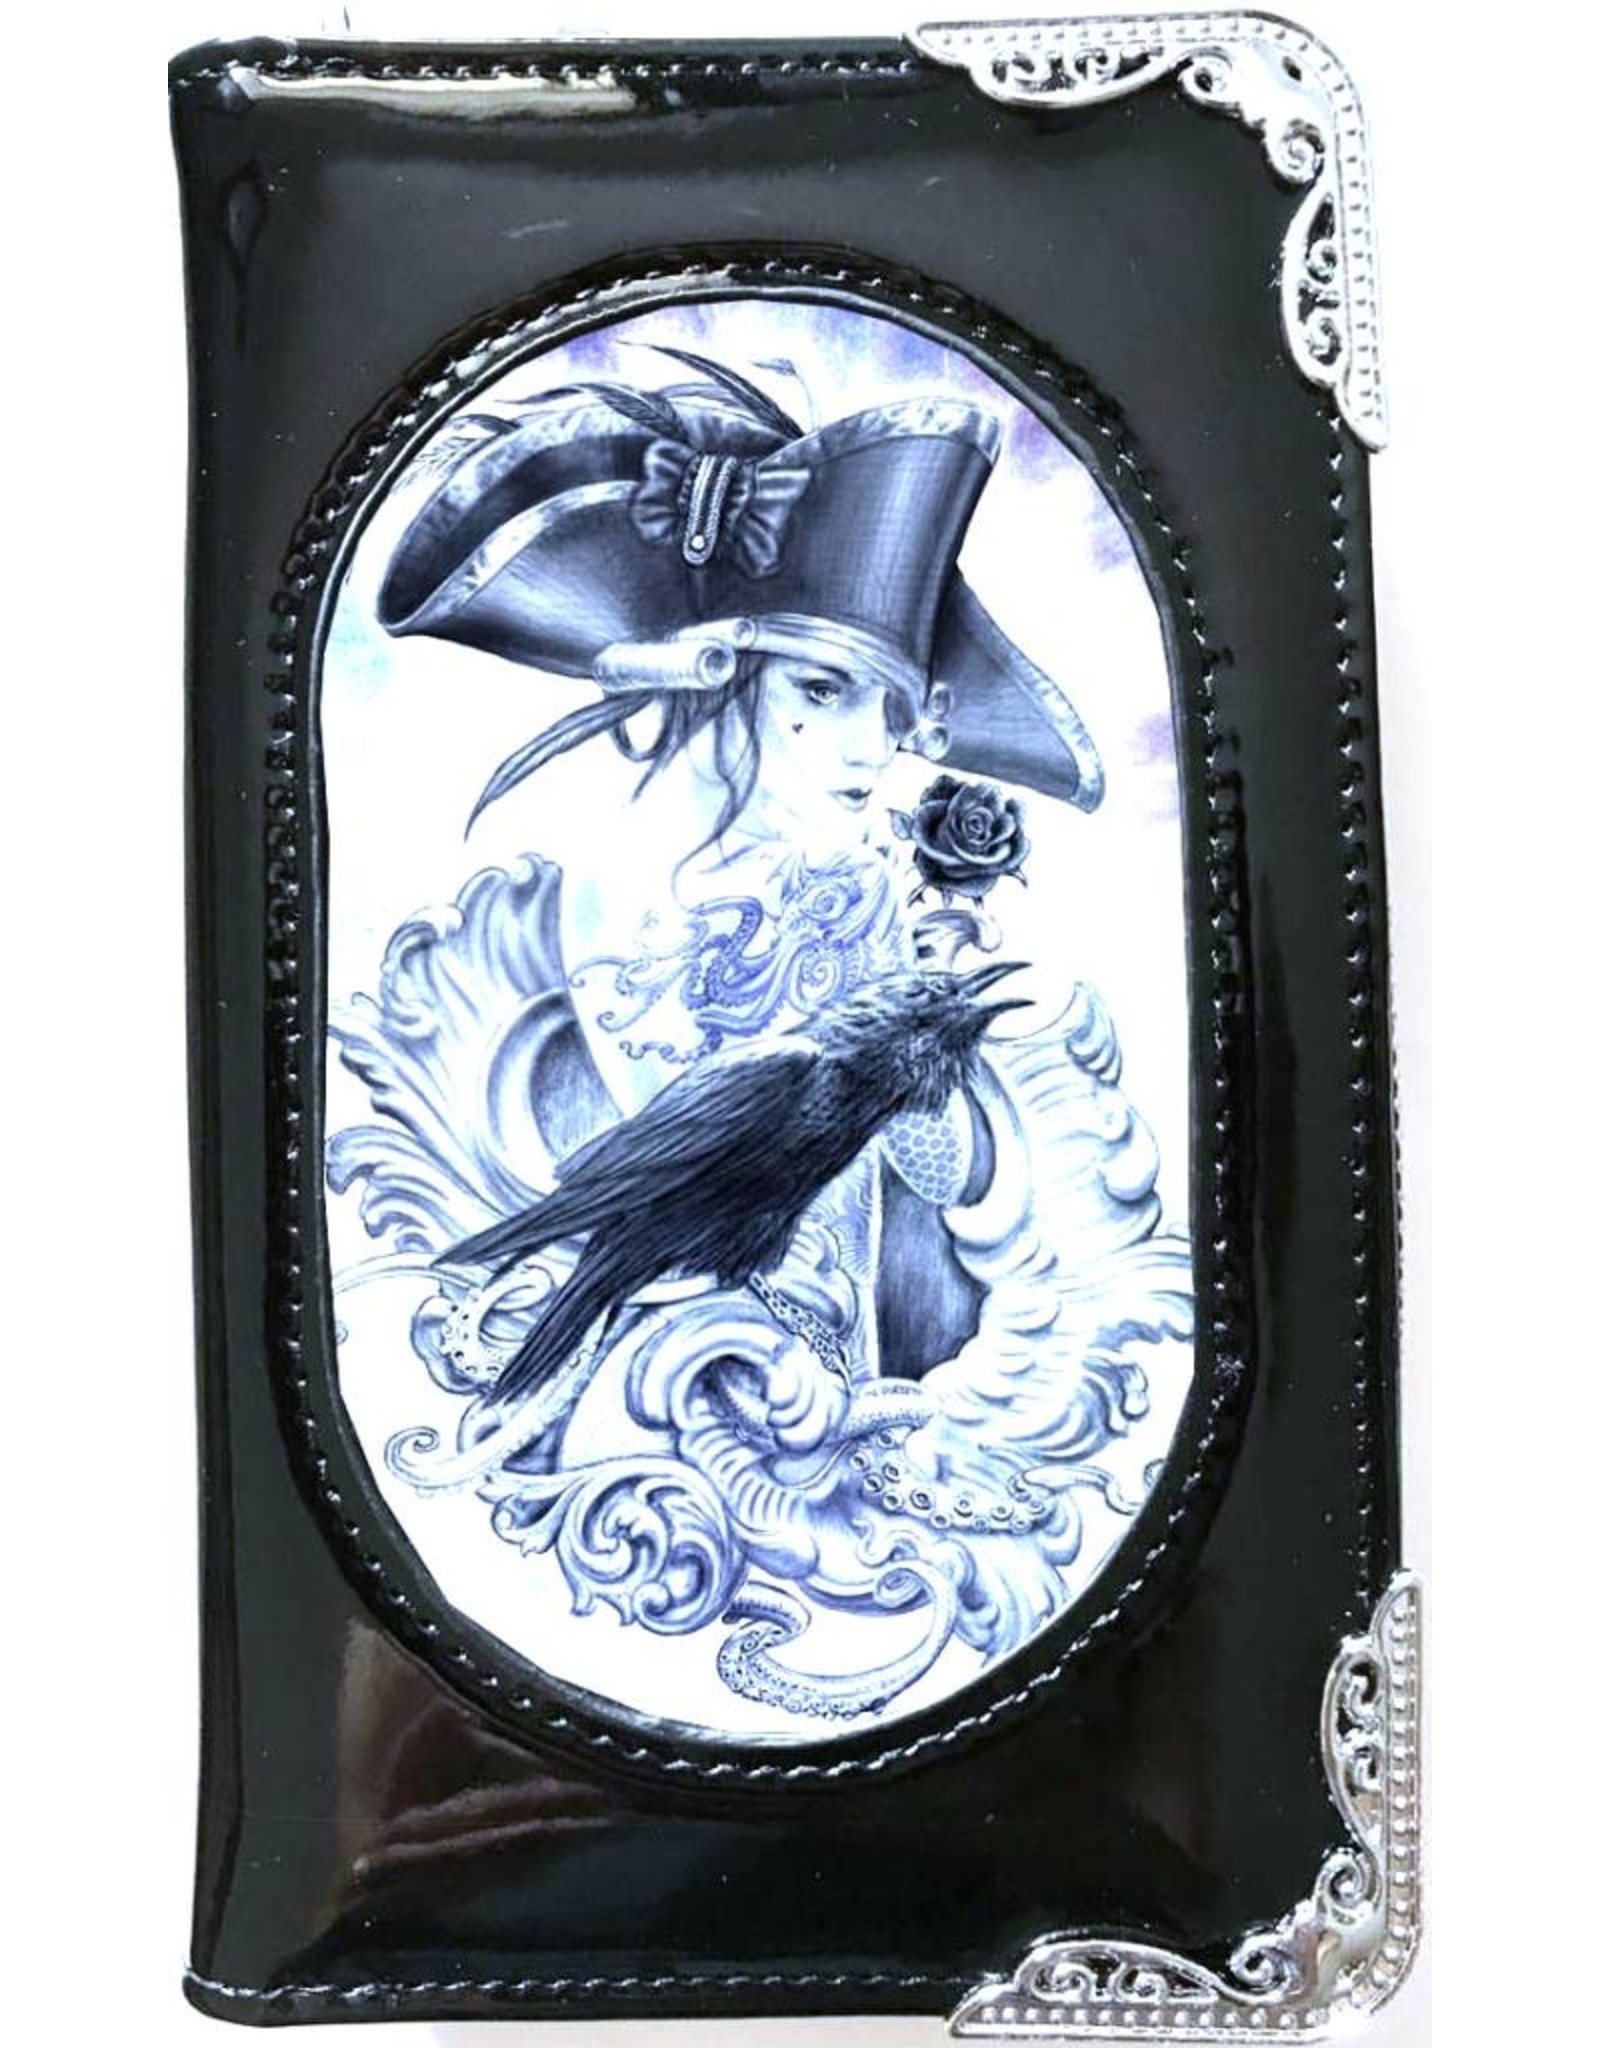 Anne Stokes Gothic wallets and purses - Alchemy 3D lenticular purse  Stormcrow